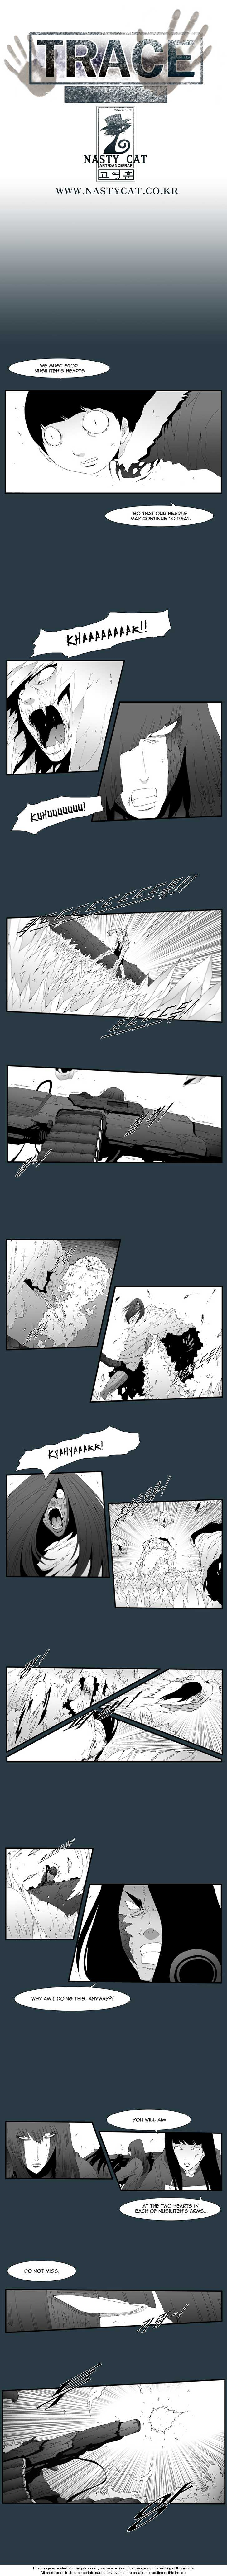 Trace 22 Page 1